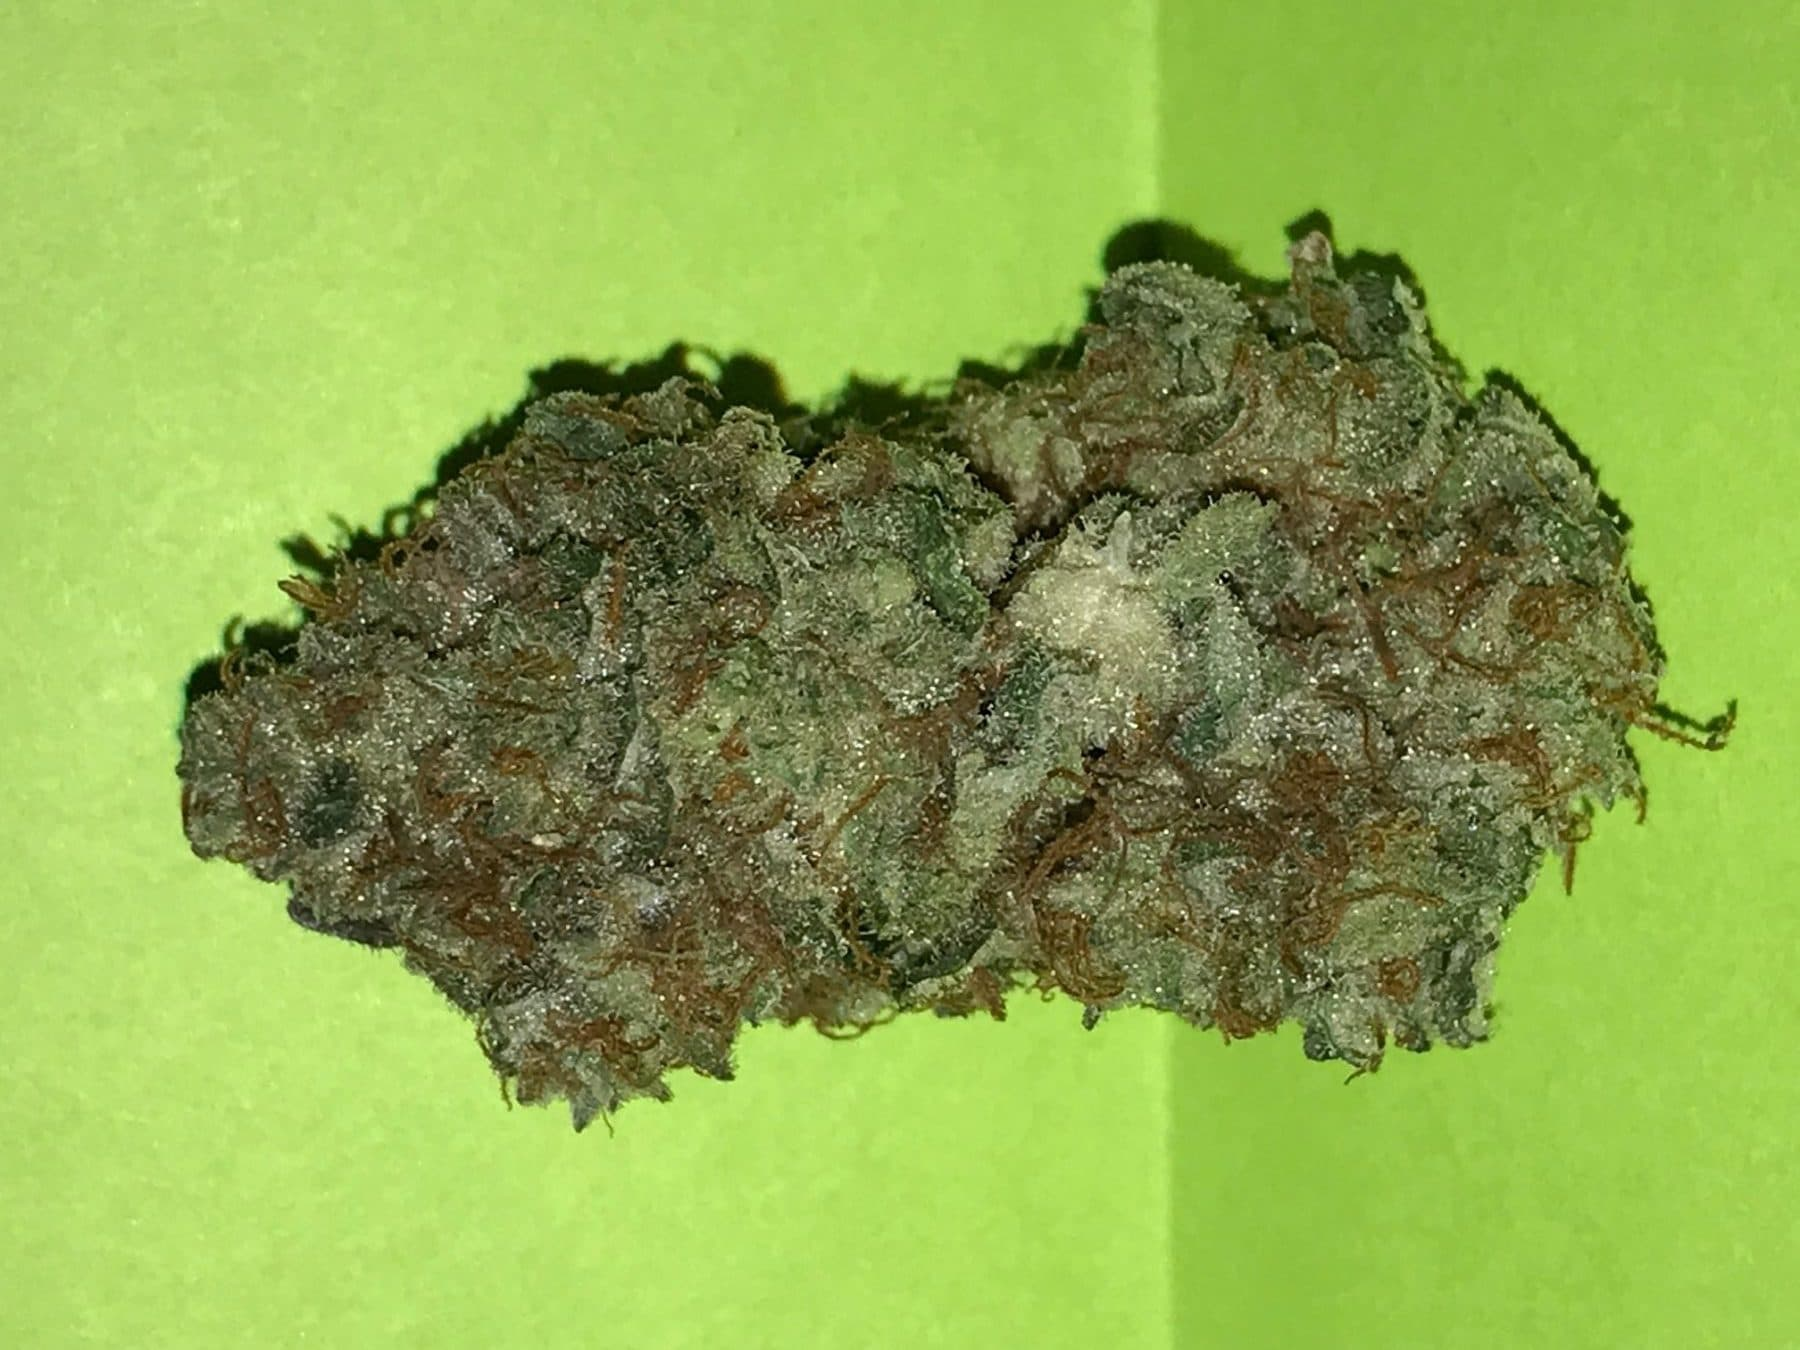 Gold Leaf Strain Review